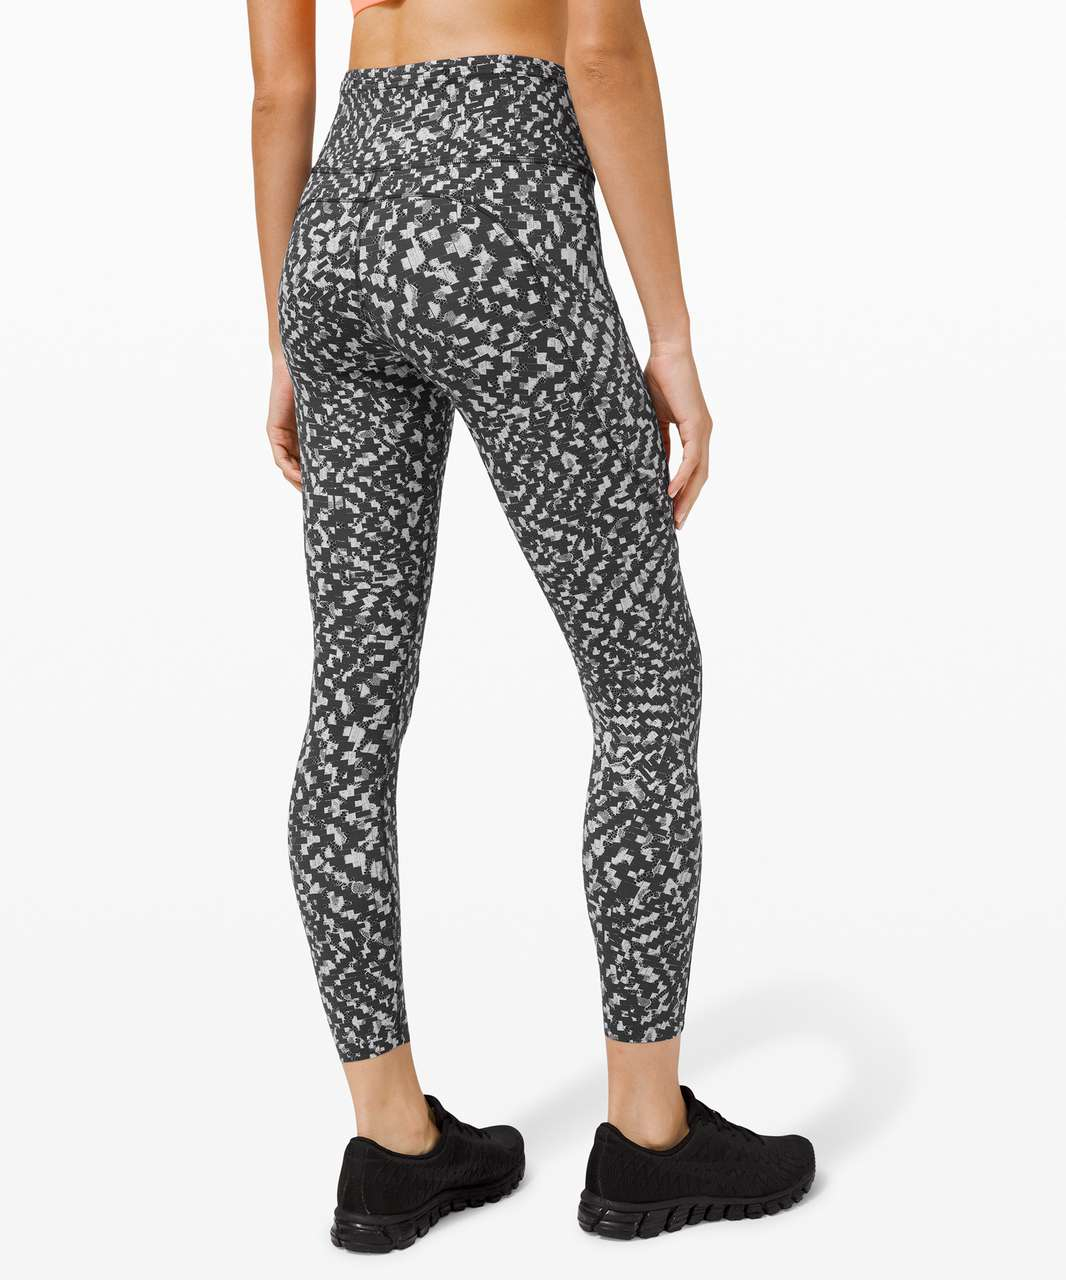 "Lululemon Fast and Free Tight II 25"" *Non-Reflective Nulux - Pace Lace Graphite Grey Multi"